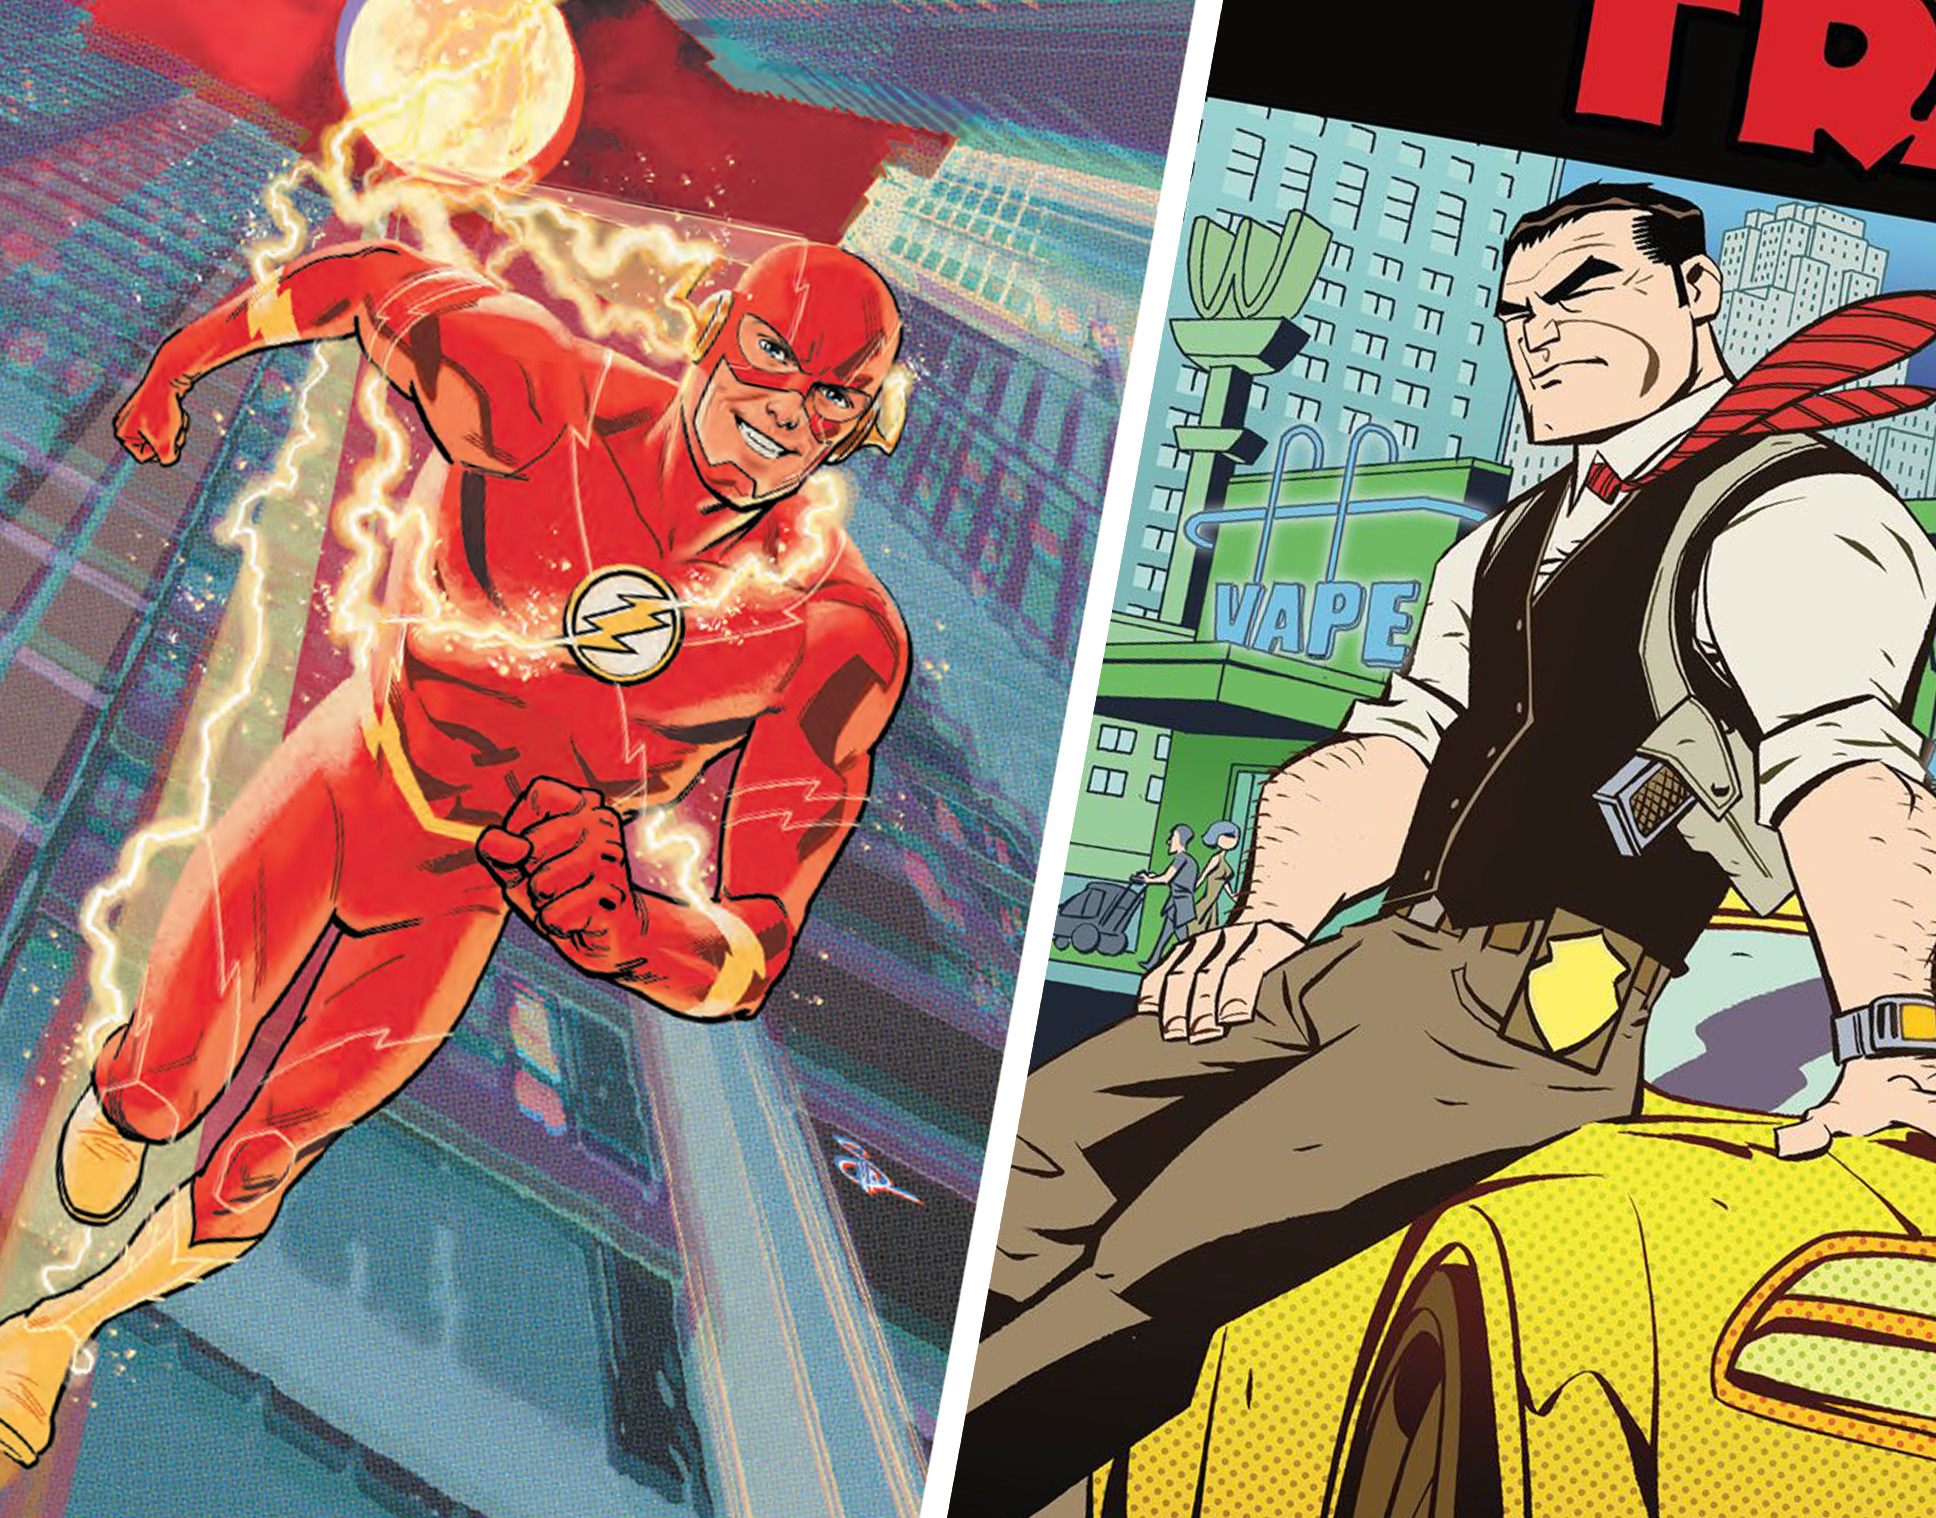 Weekly comics news and reviews to keep you up to date leading into 6/26/19!